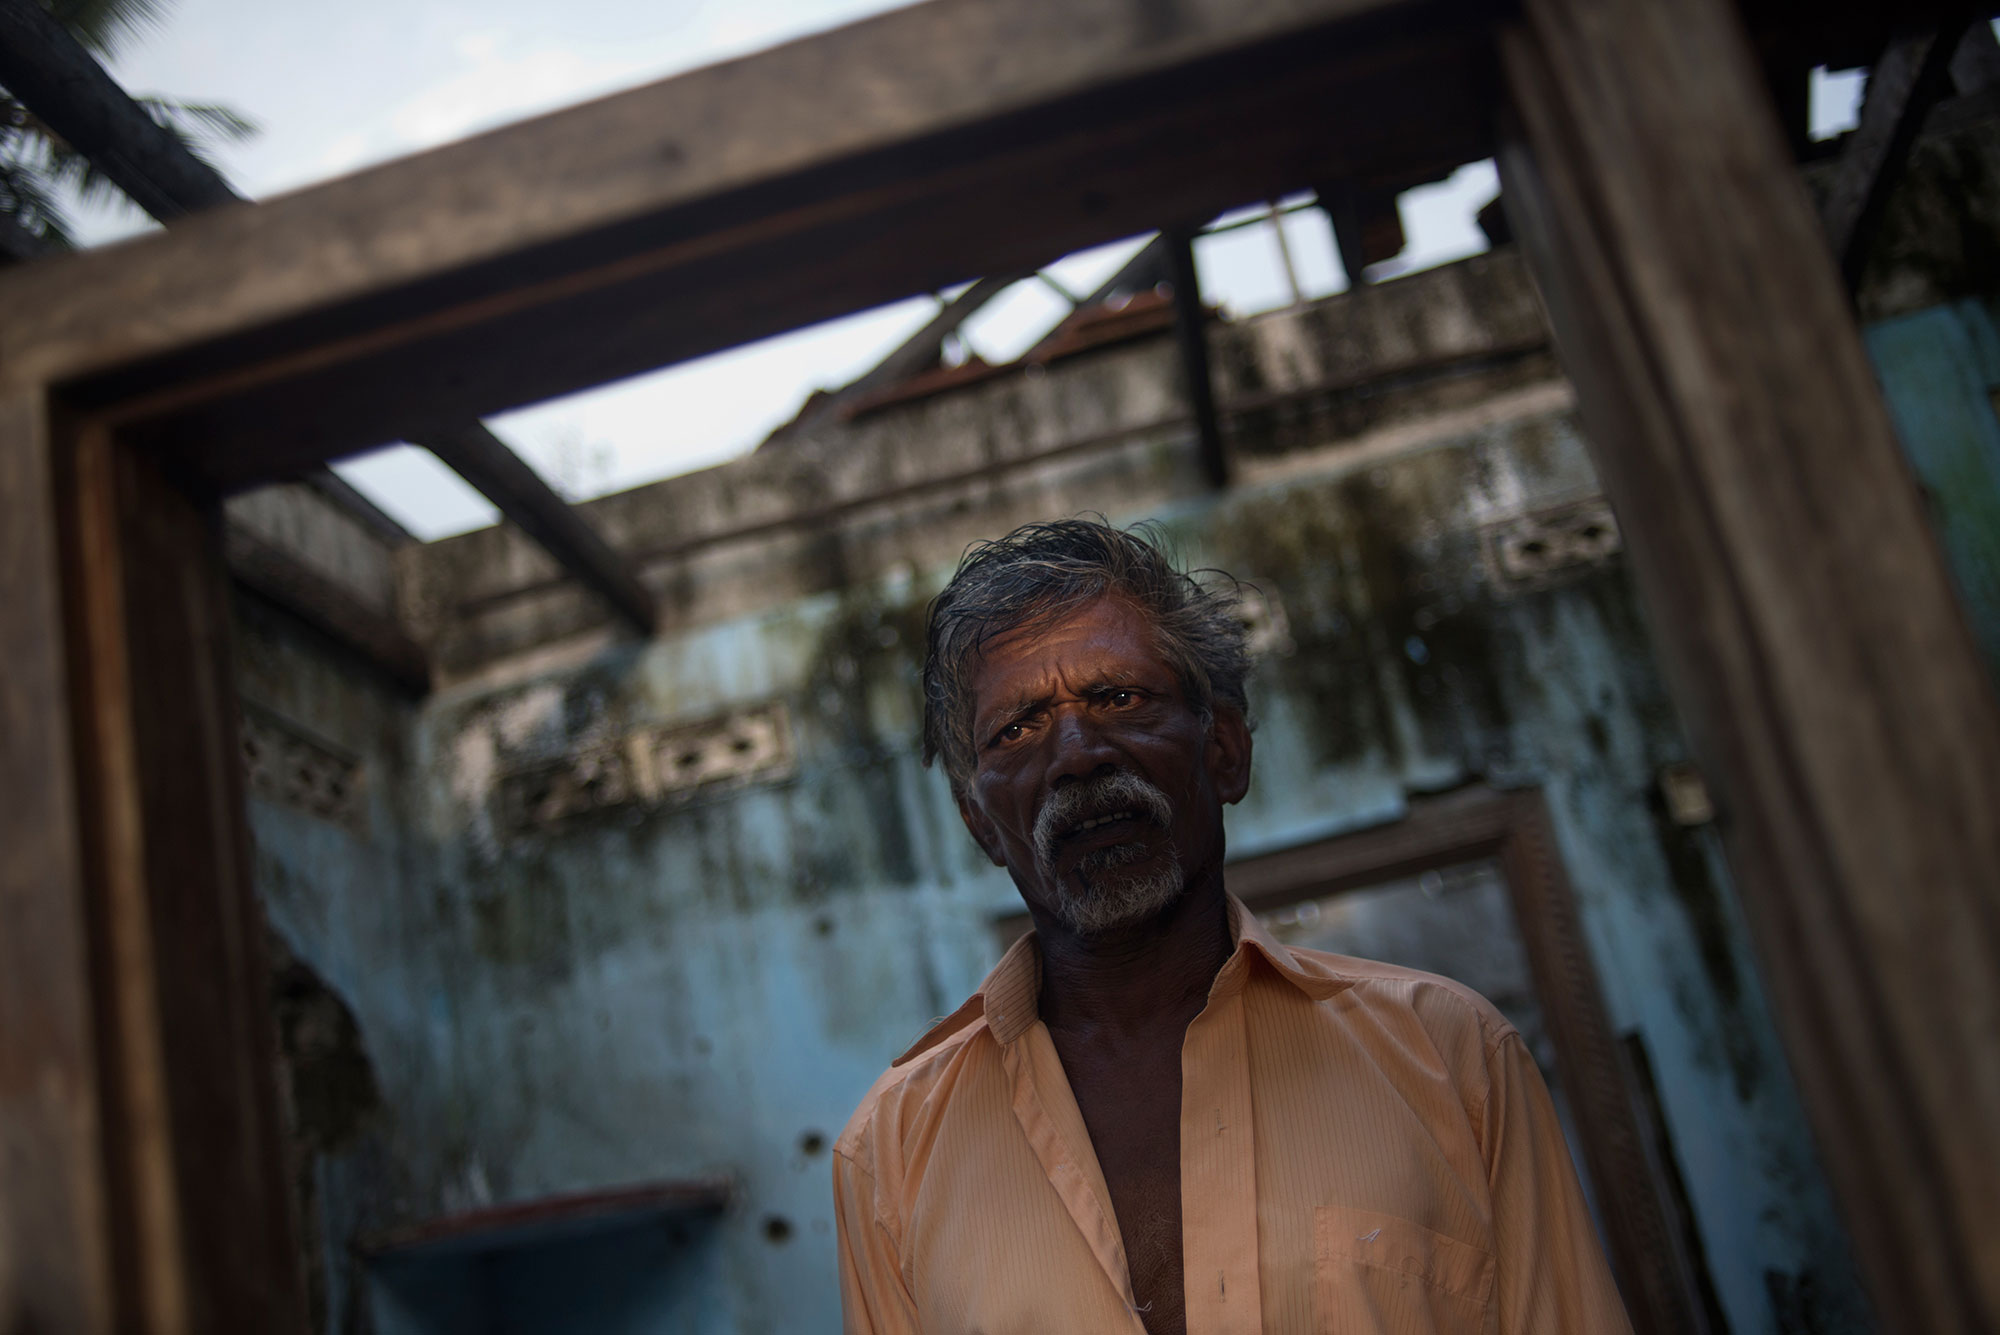 Anthony Fernando, a Tamil civilian, stands at the entrance of his house in the Mullaitivu district, which was badly damaged during the fighting. His wife and daughter were killed during the war. [Miguel Candela/Al Jazeera]